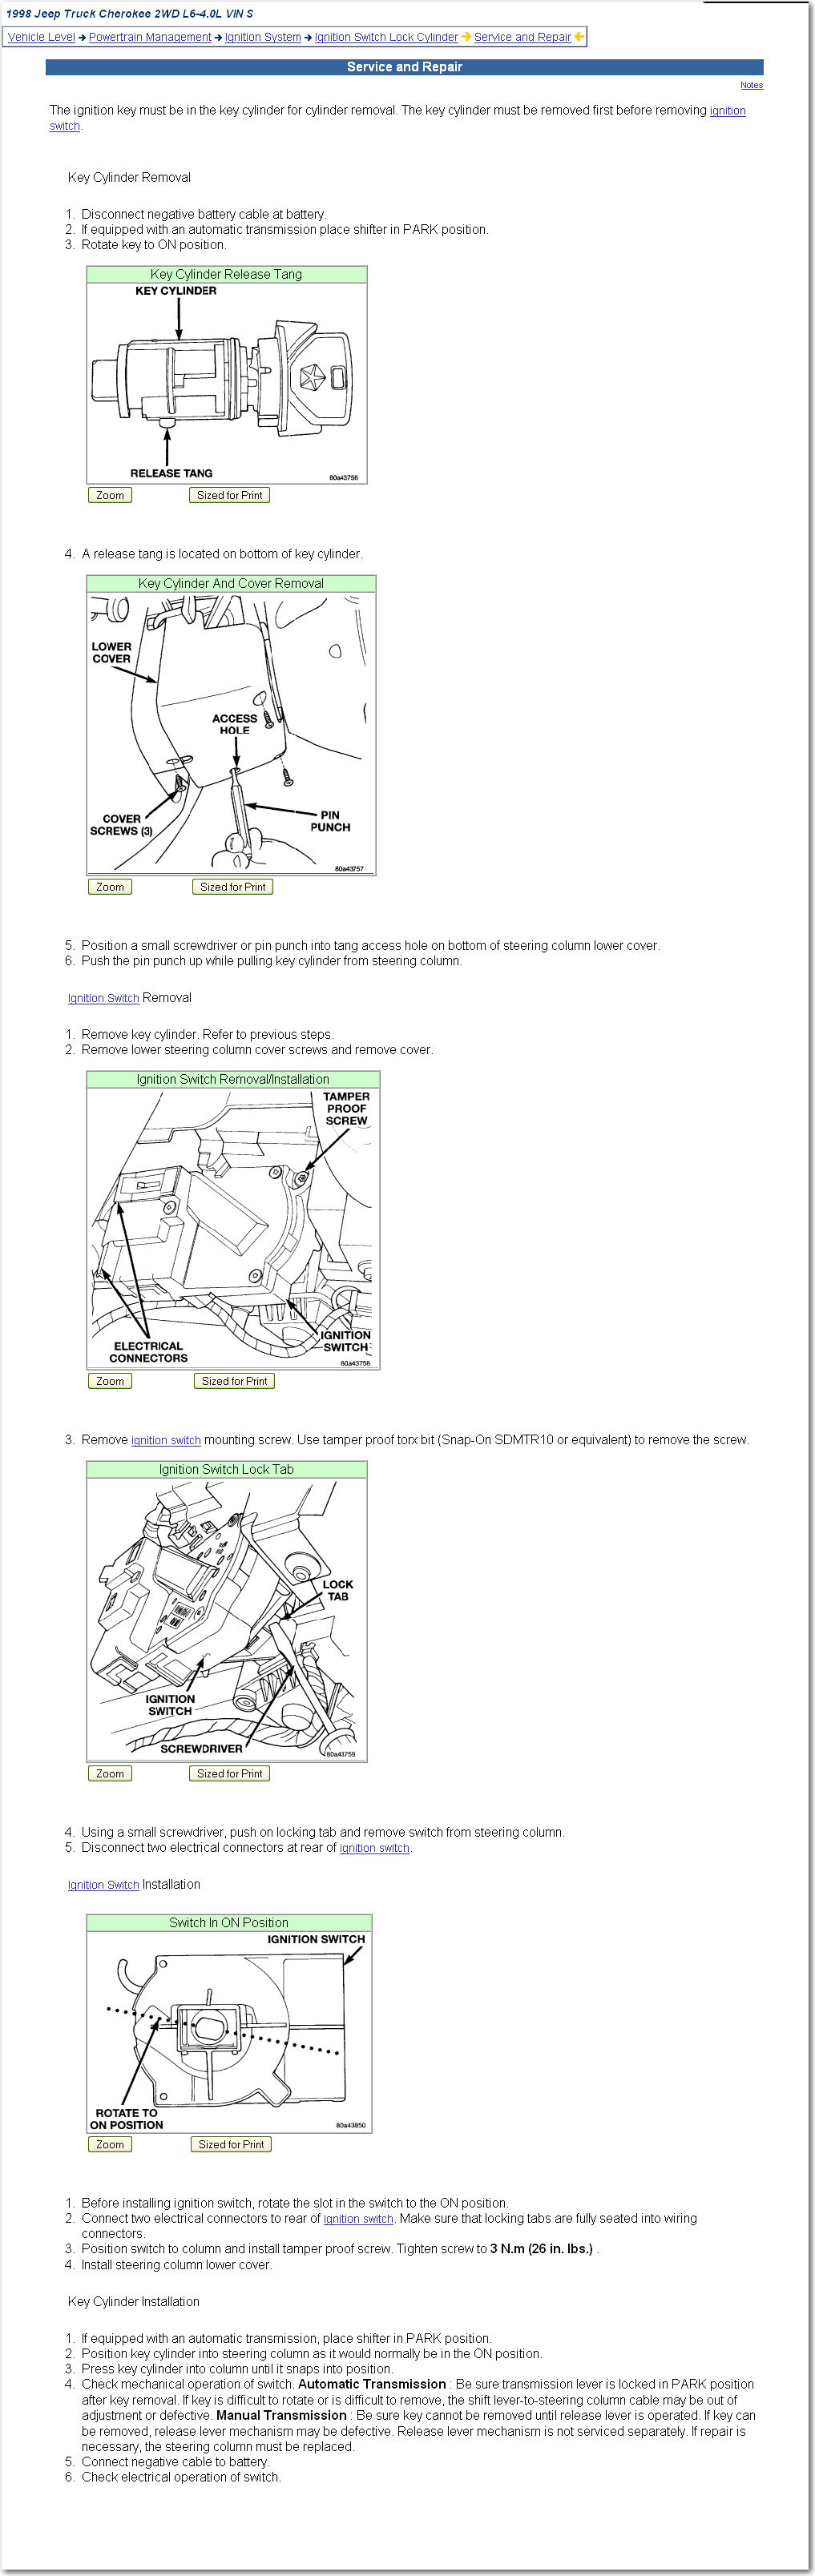 How Do You Remove And Install A New Ignition Switch In Acherokee Sport 01 Jeep Cherokee Wiring Diagram If Have Any More Questions Or Need Diagrams Please Dont Hesisitate To Askthanks Again Jhoop